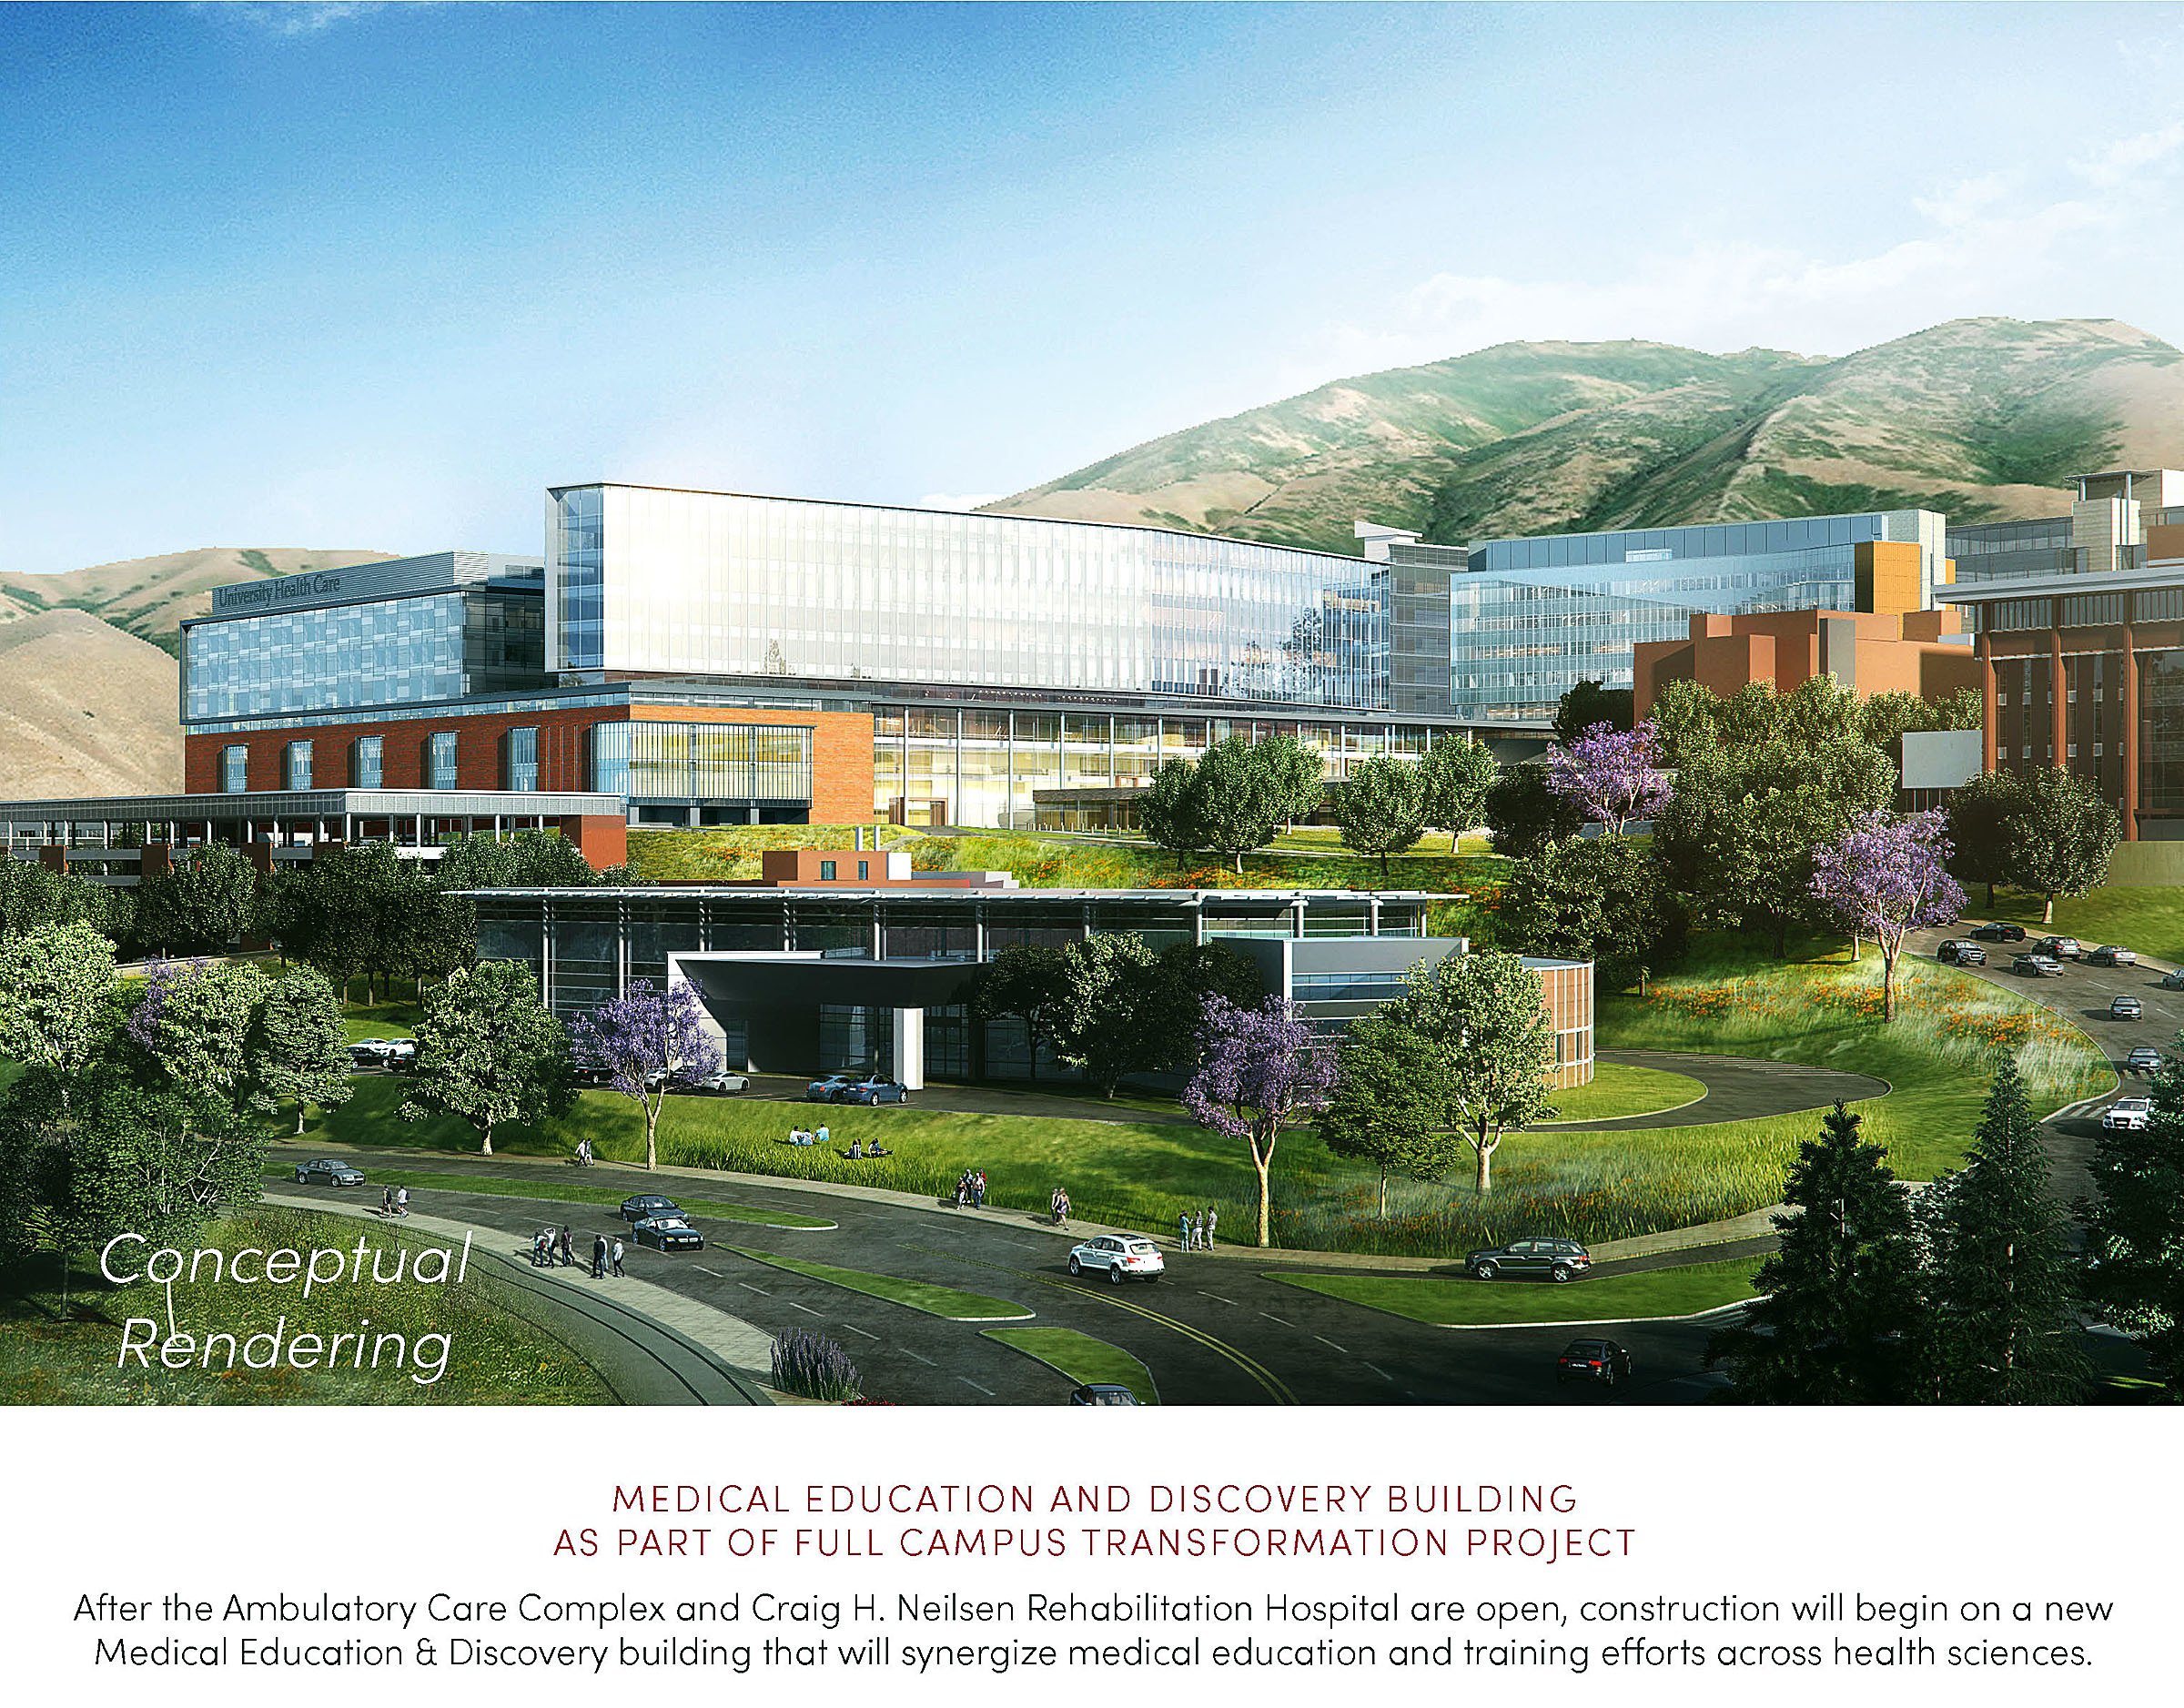 A team sport': Intermountain gives U  med school $15M for